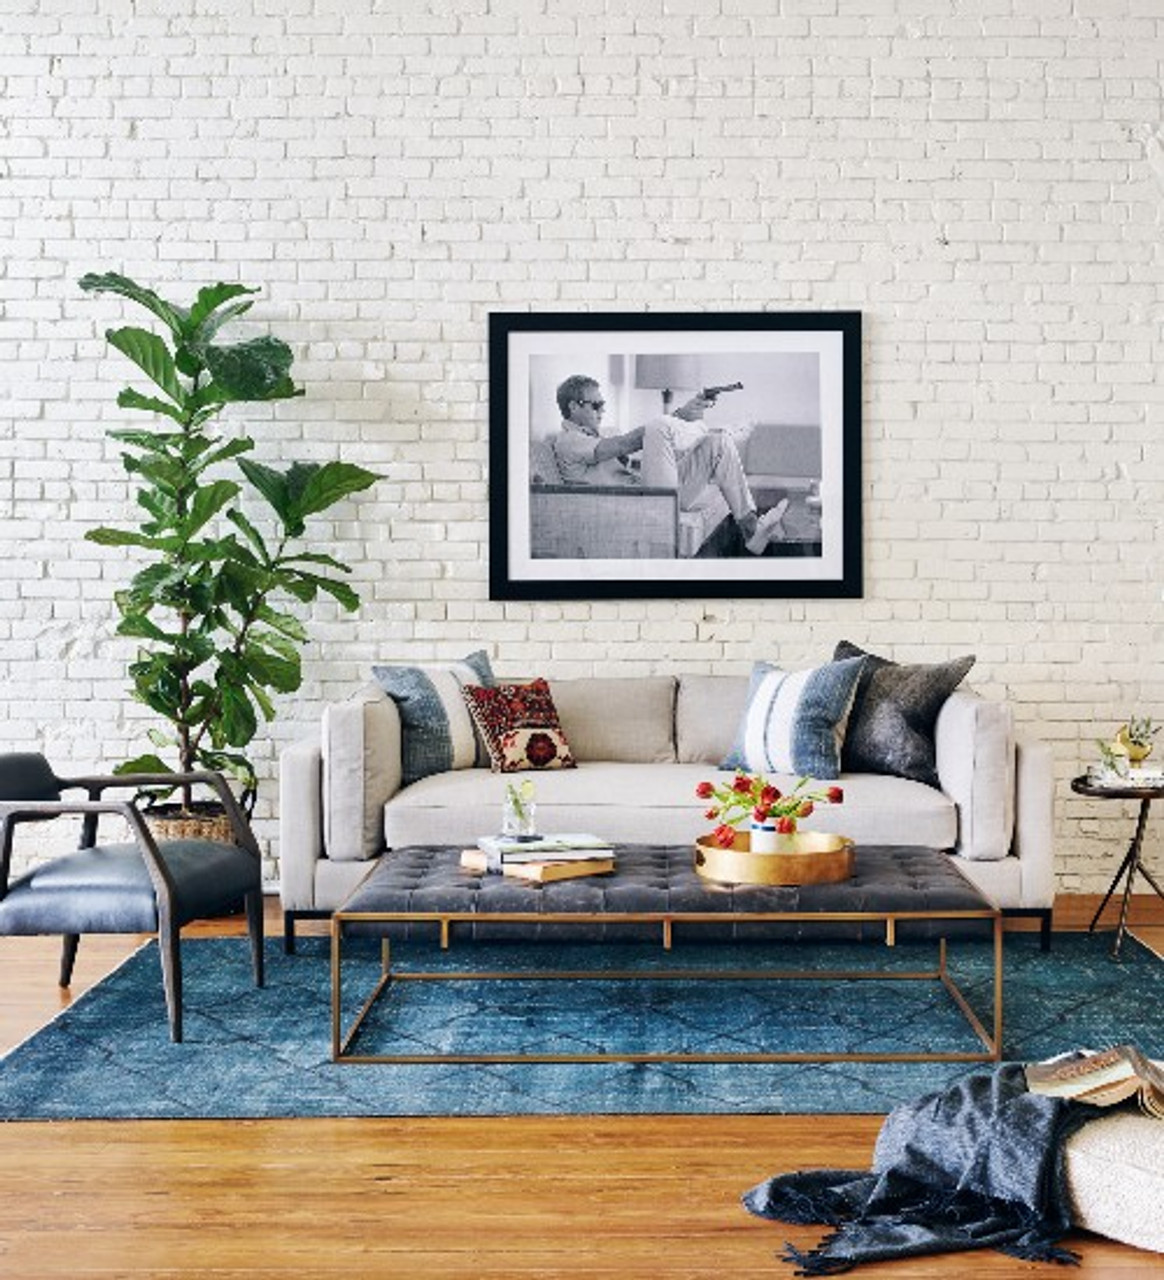 Feng shui tips furniture placement Room Decorating Essential Feng Shui Living Room Tips Revivame Essential Feng Shui Living Room Tips Zin Home